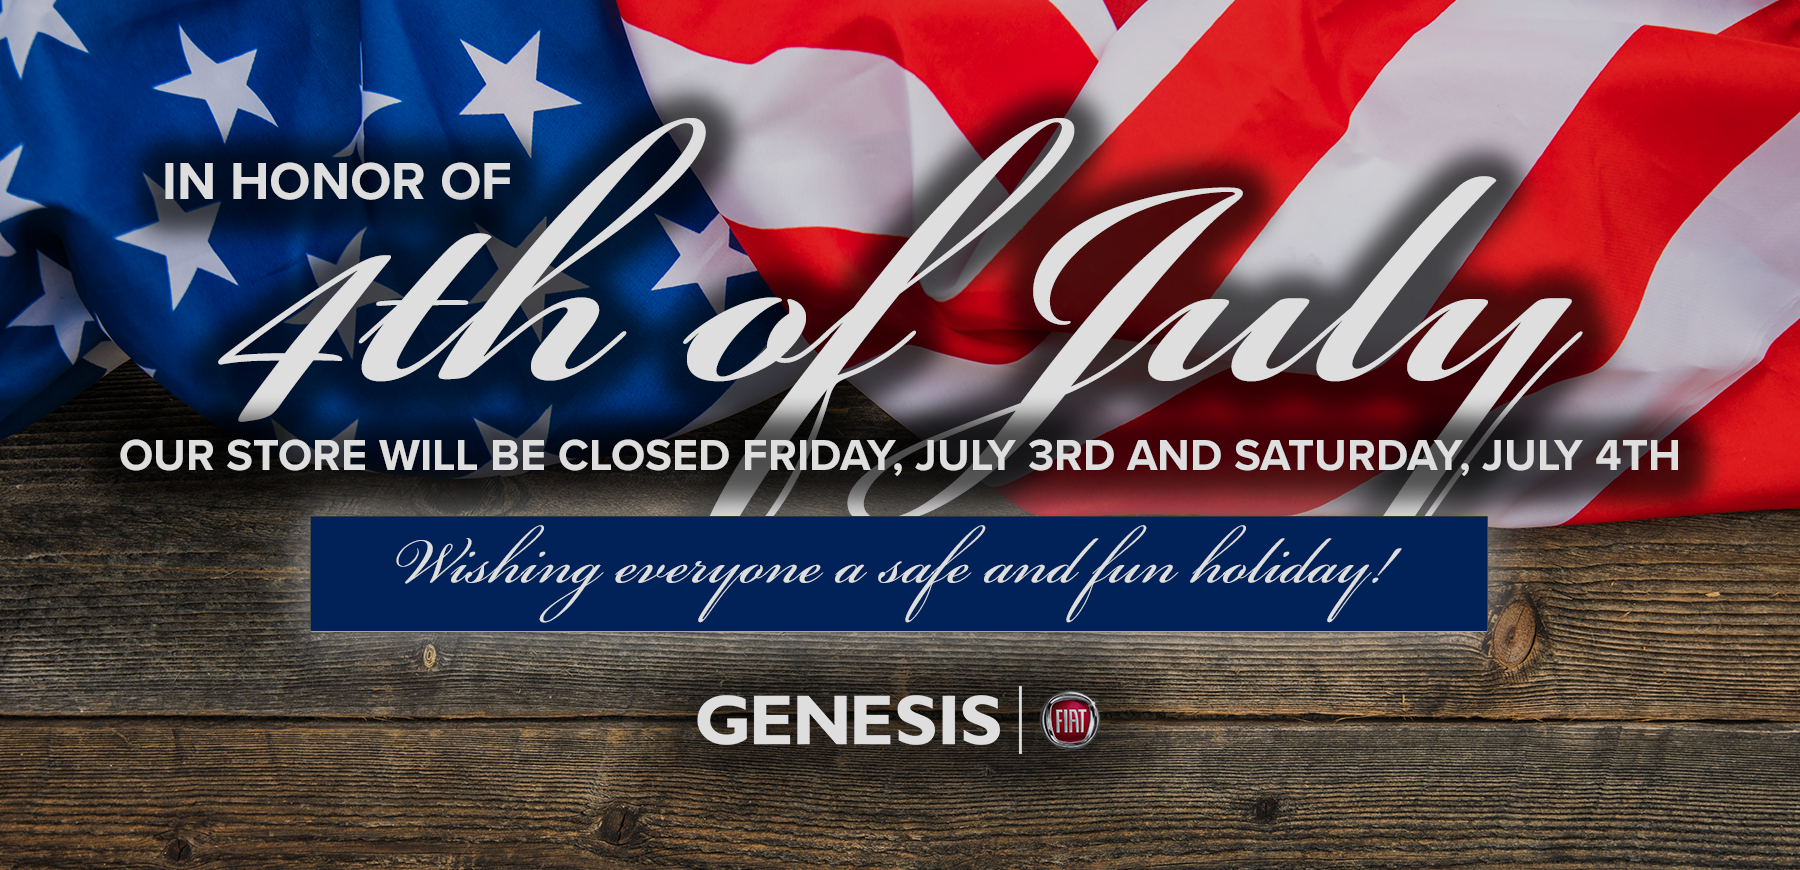 Genesis FIAT is closed from Independence Day